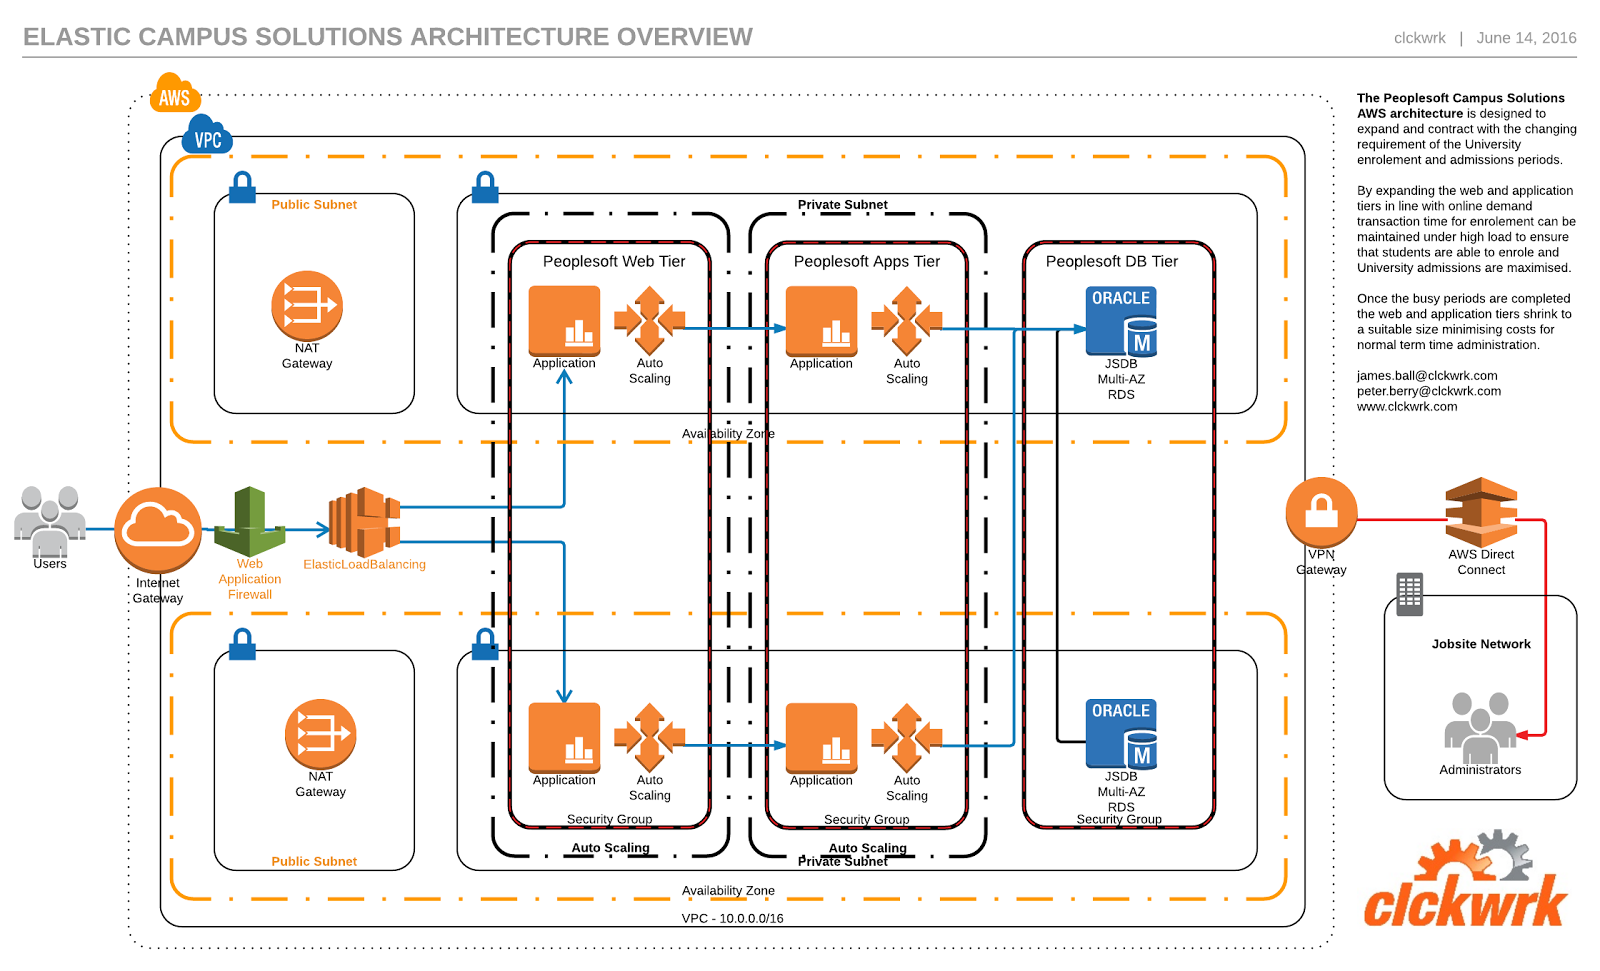 Clckwrk design blueprint peoplesoft campus solutions on aws availability campus solutions needs a high availability infrastructure to ensure that both the administrative and student users can access data at all malvernweather Image collections